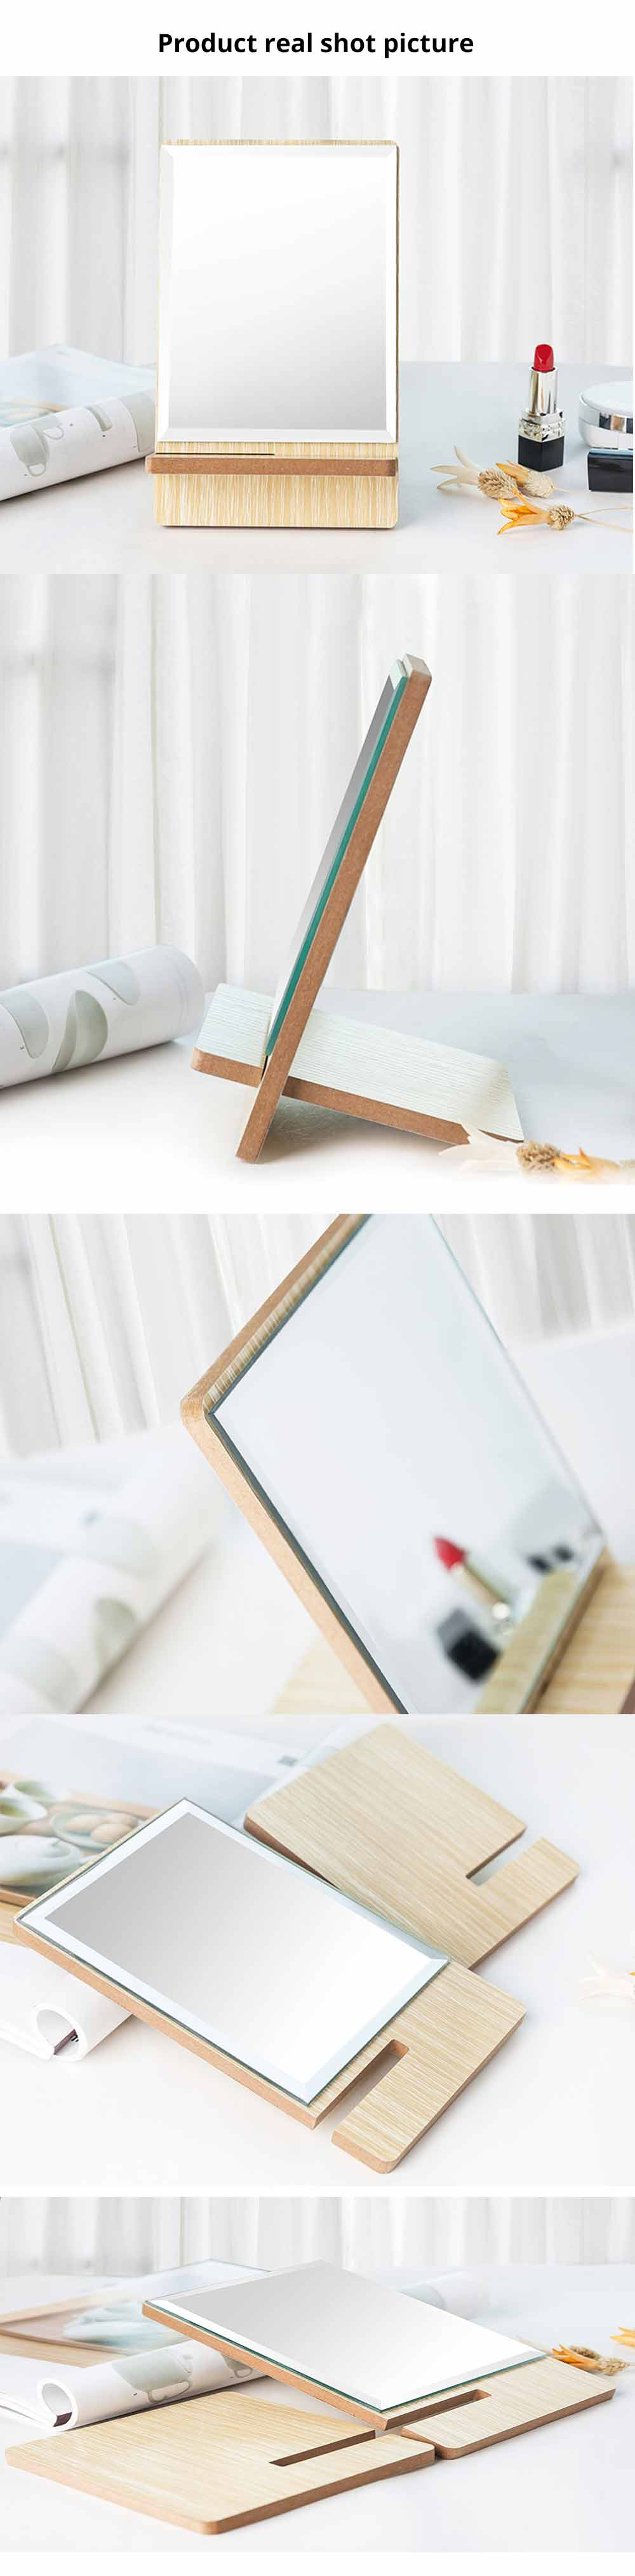 Wooden Table Top Mirror, One-Sided Makeup Mirror For Vanity, Portable Rectangle Cosmetic Mirror 5